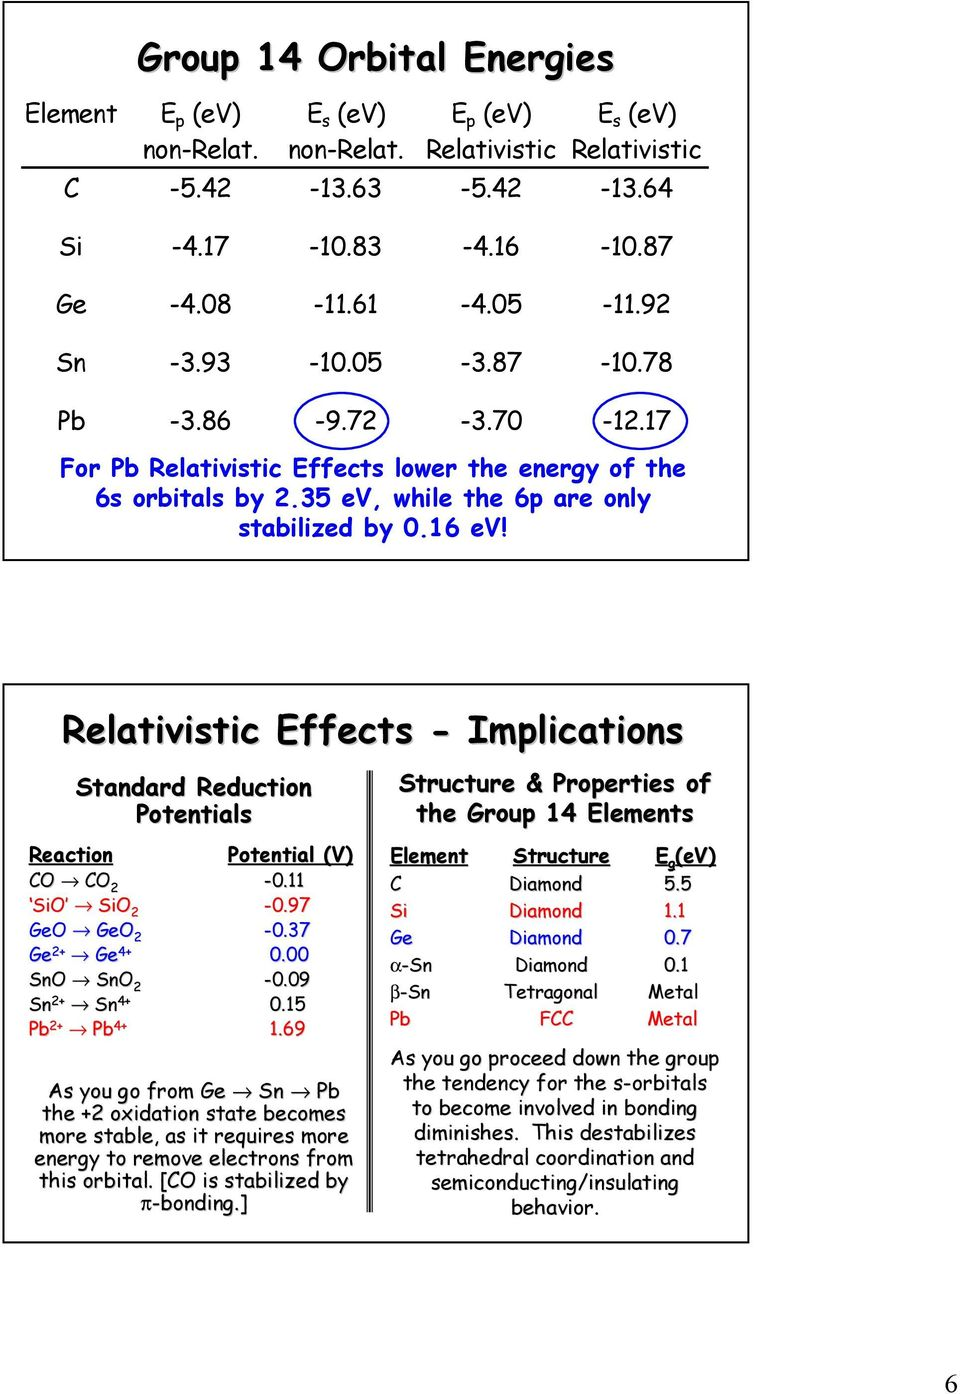 Relativistic Effects - Implications Standard Reduction Potentials Reaction Potential (V) CO CO 2-0.11 SiO SiO 2-0.97 GeO GeO 2-0.37 Ge Ge 0.00 SnO SnO 2-0.09 Sn Sn 0.15 Pb Pb 1.